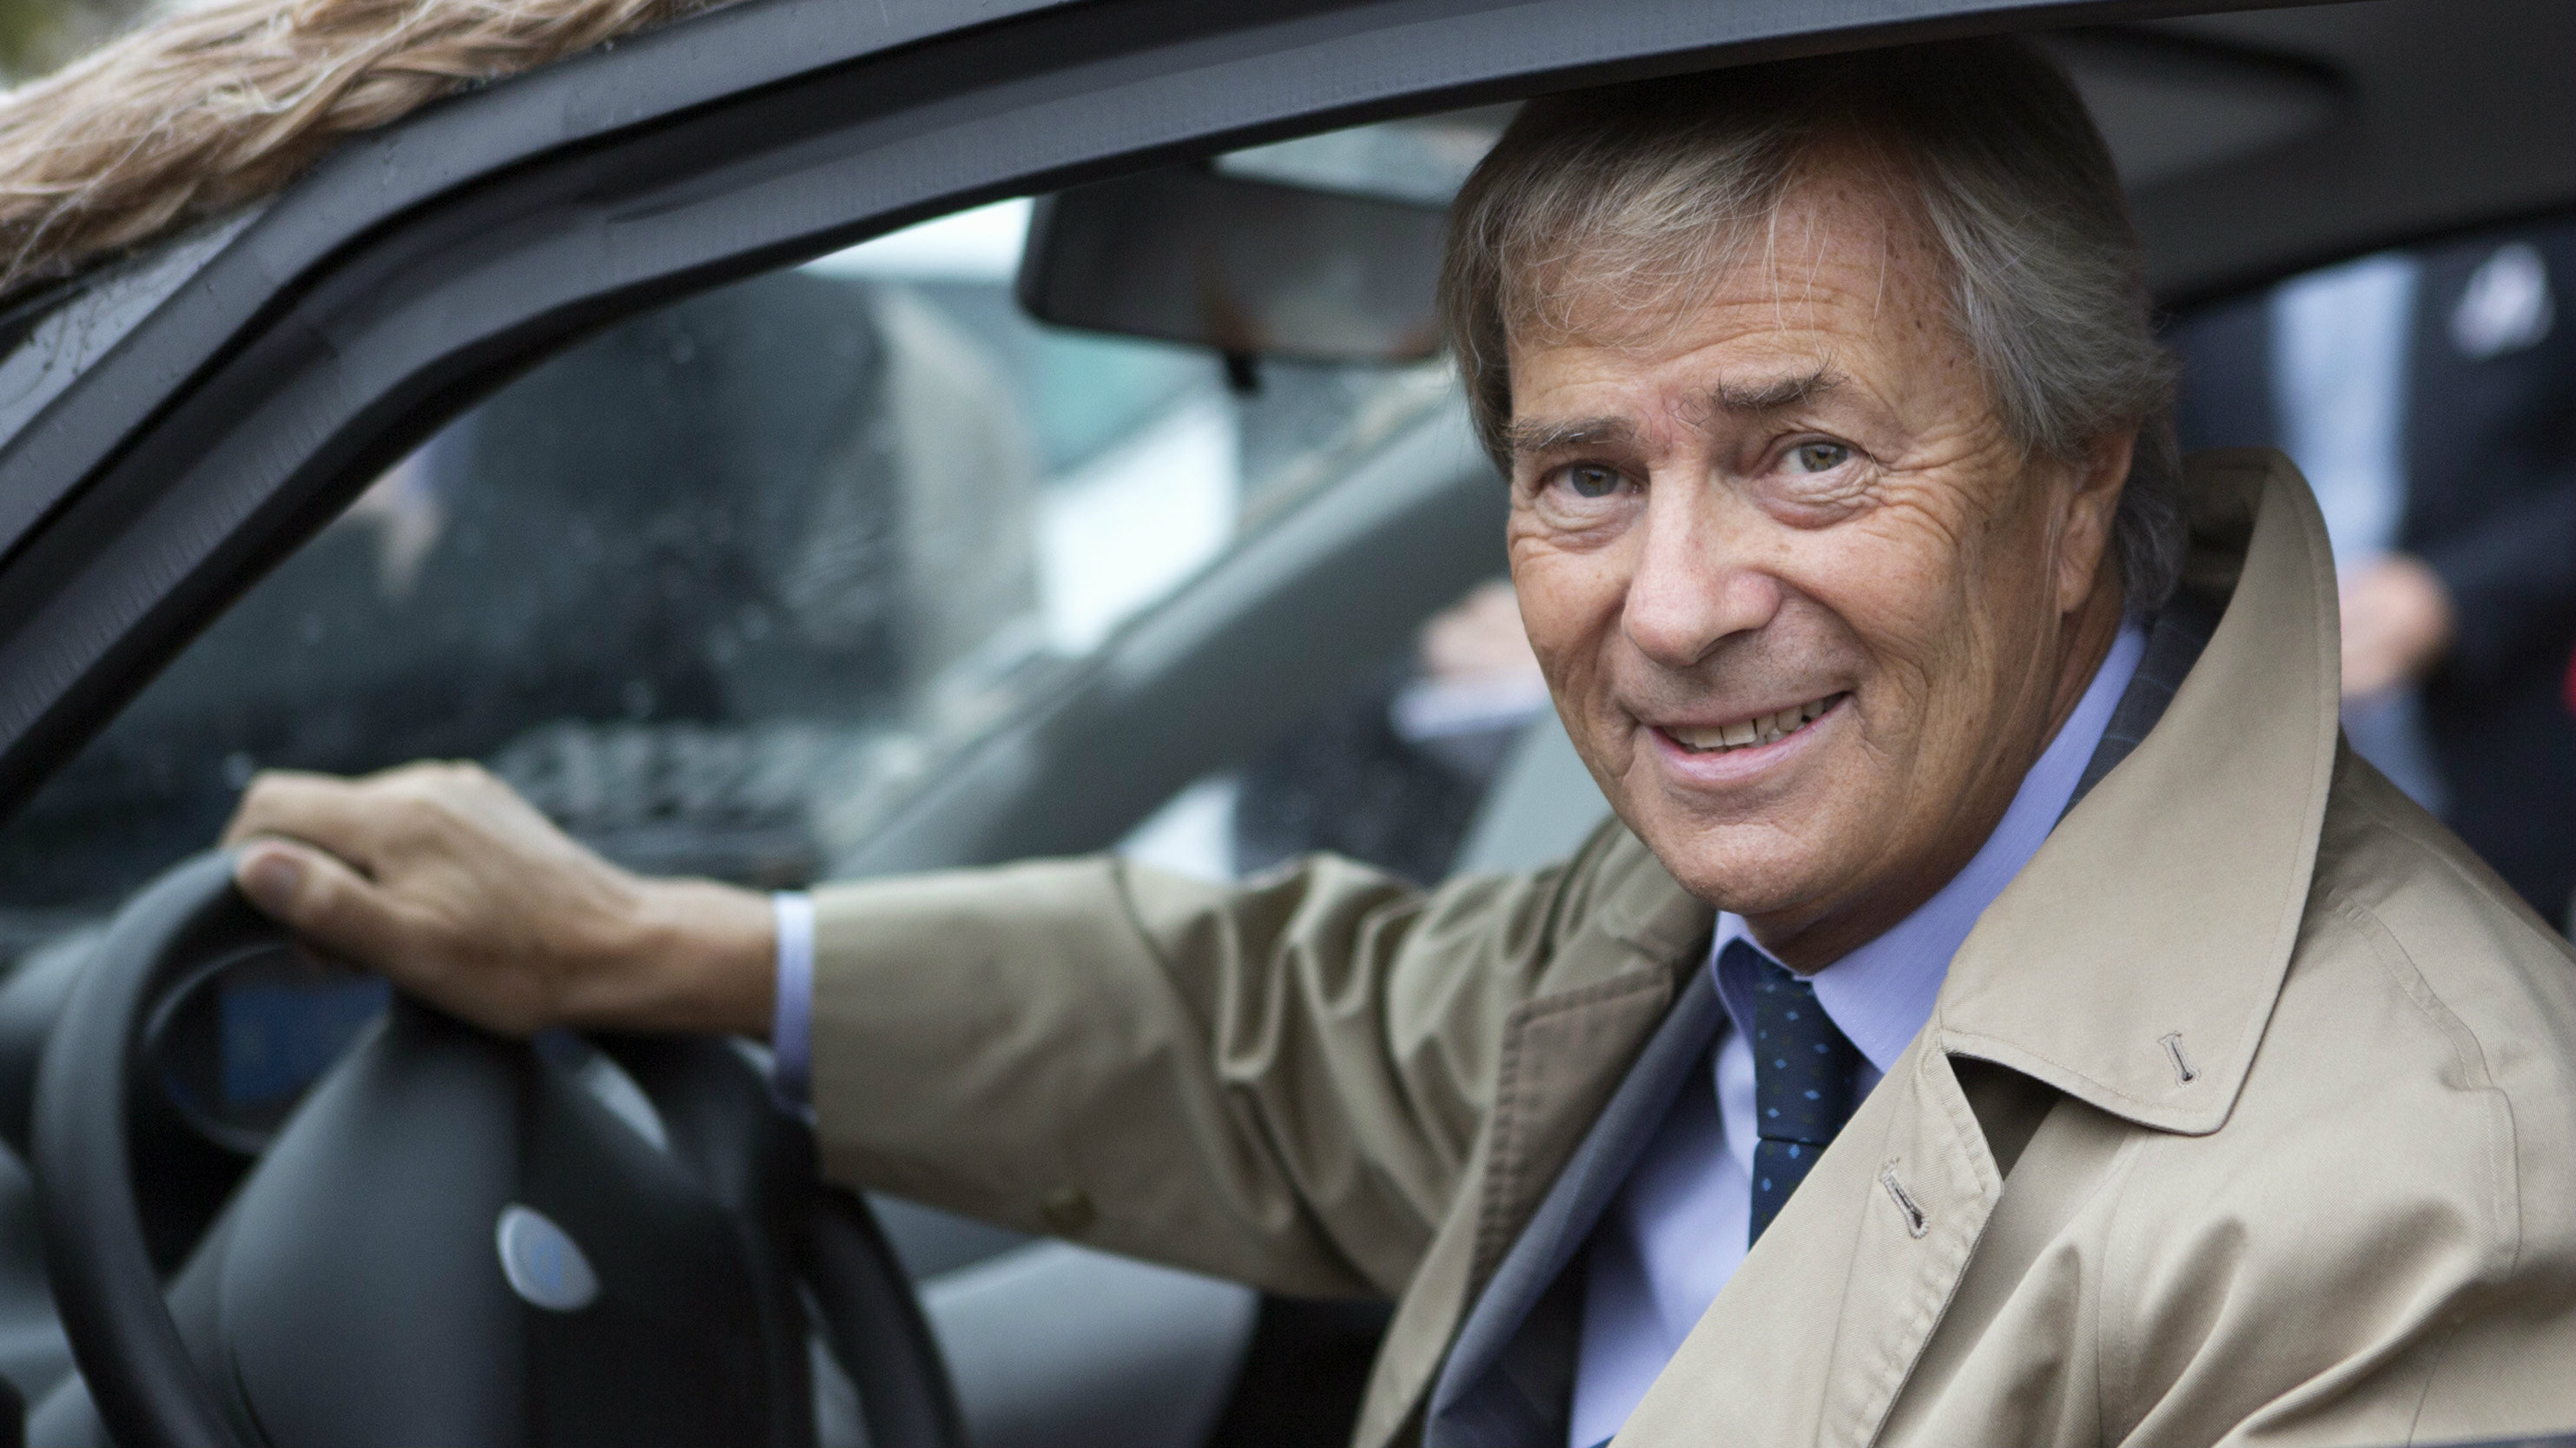 n this Oct.8, 2014 file photo, France's Vincent Bollore, head of the Bollore Group, sits in a customized Autolib electric car in Paris. French billionaire Vincent Bollore has been detained for questioning in an investigation into alleged corruption in lucrative port deals in Africa. French newspaper Le Monde says the investigation focuses on suspicions around port deals in 2010 in Lome, the capital of the West African nation of Togo, and Conakry in Guinea.